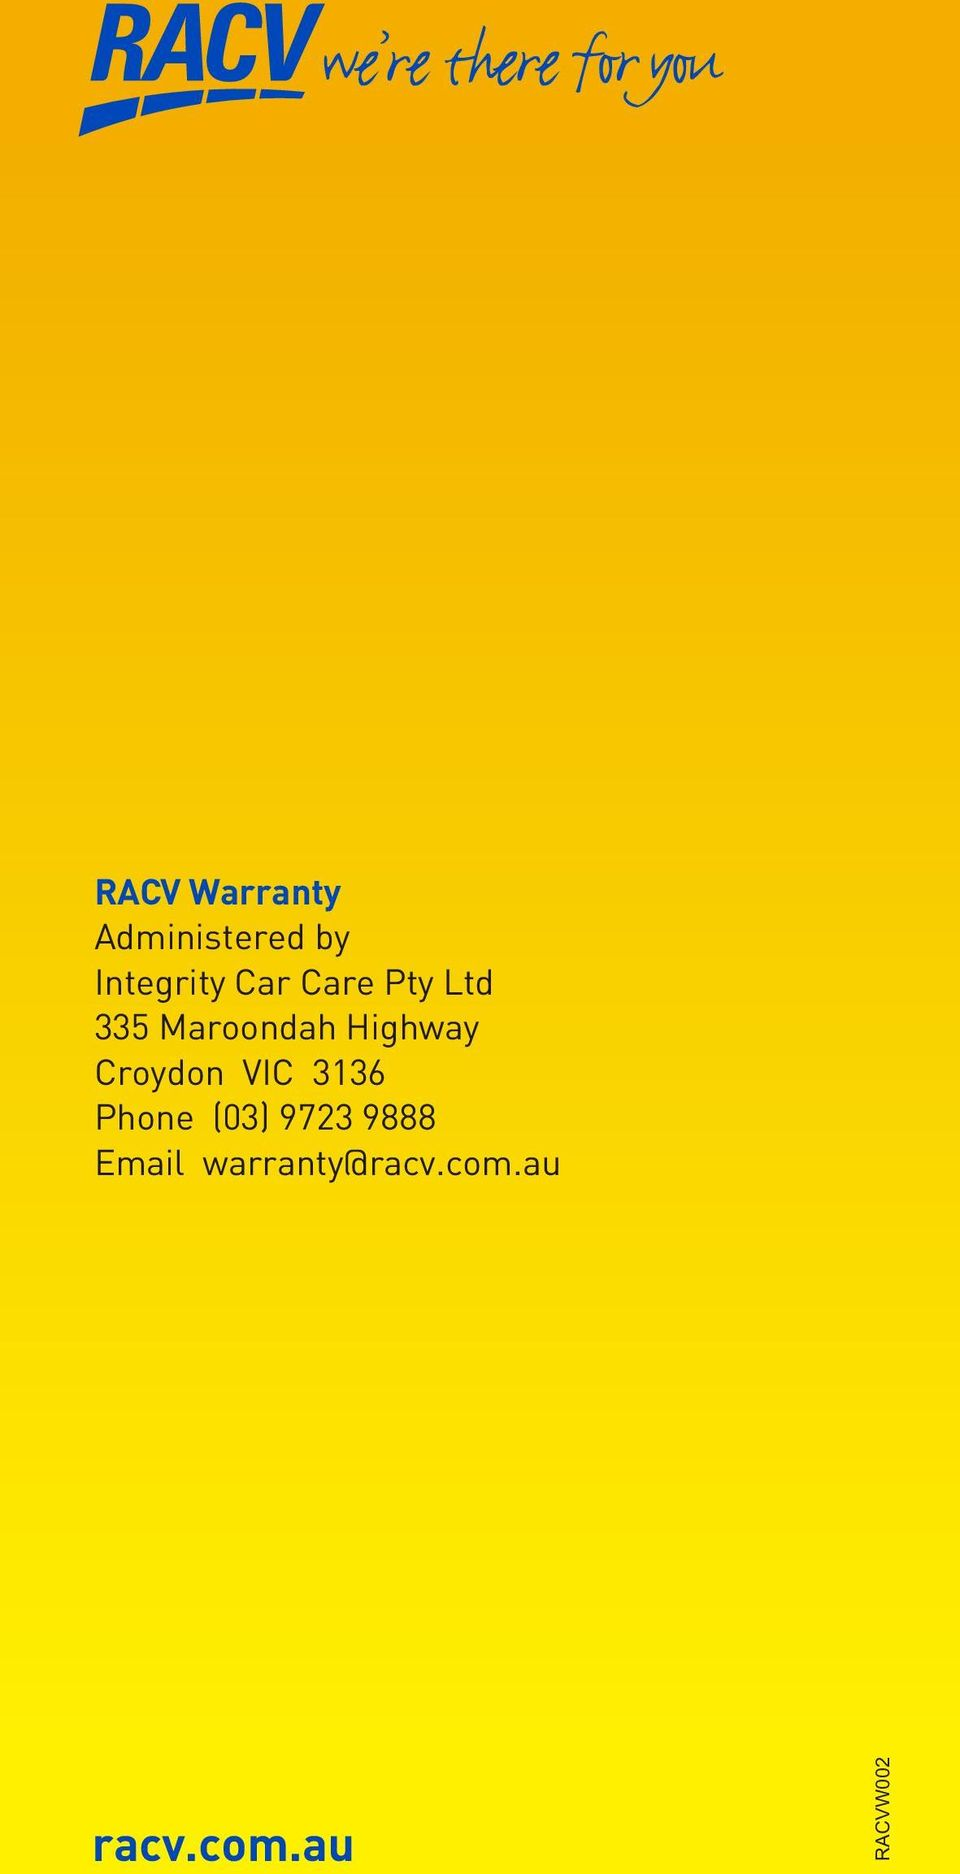 Croydon VIC 3136 Phone (03) 9723 9888